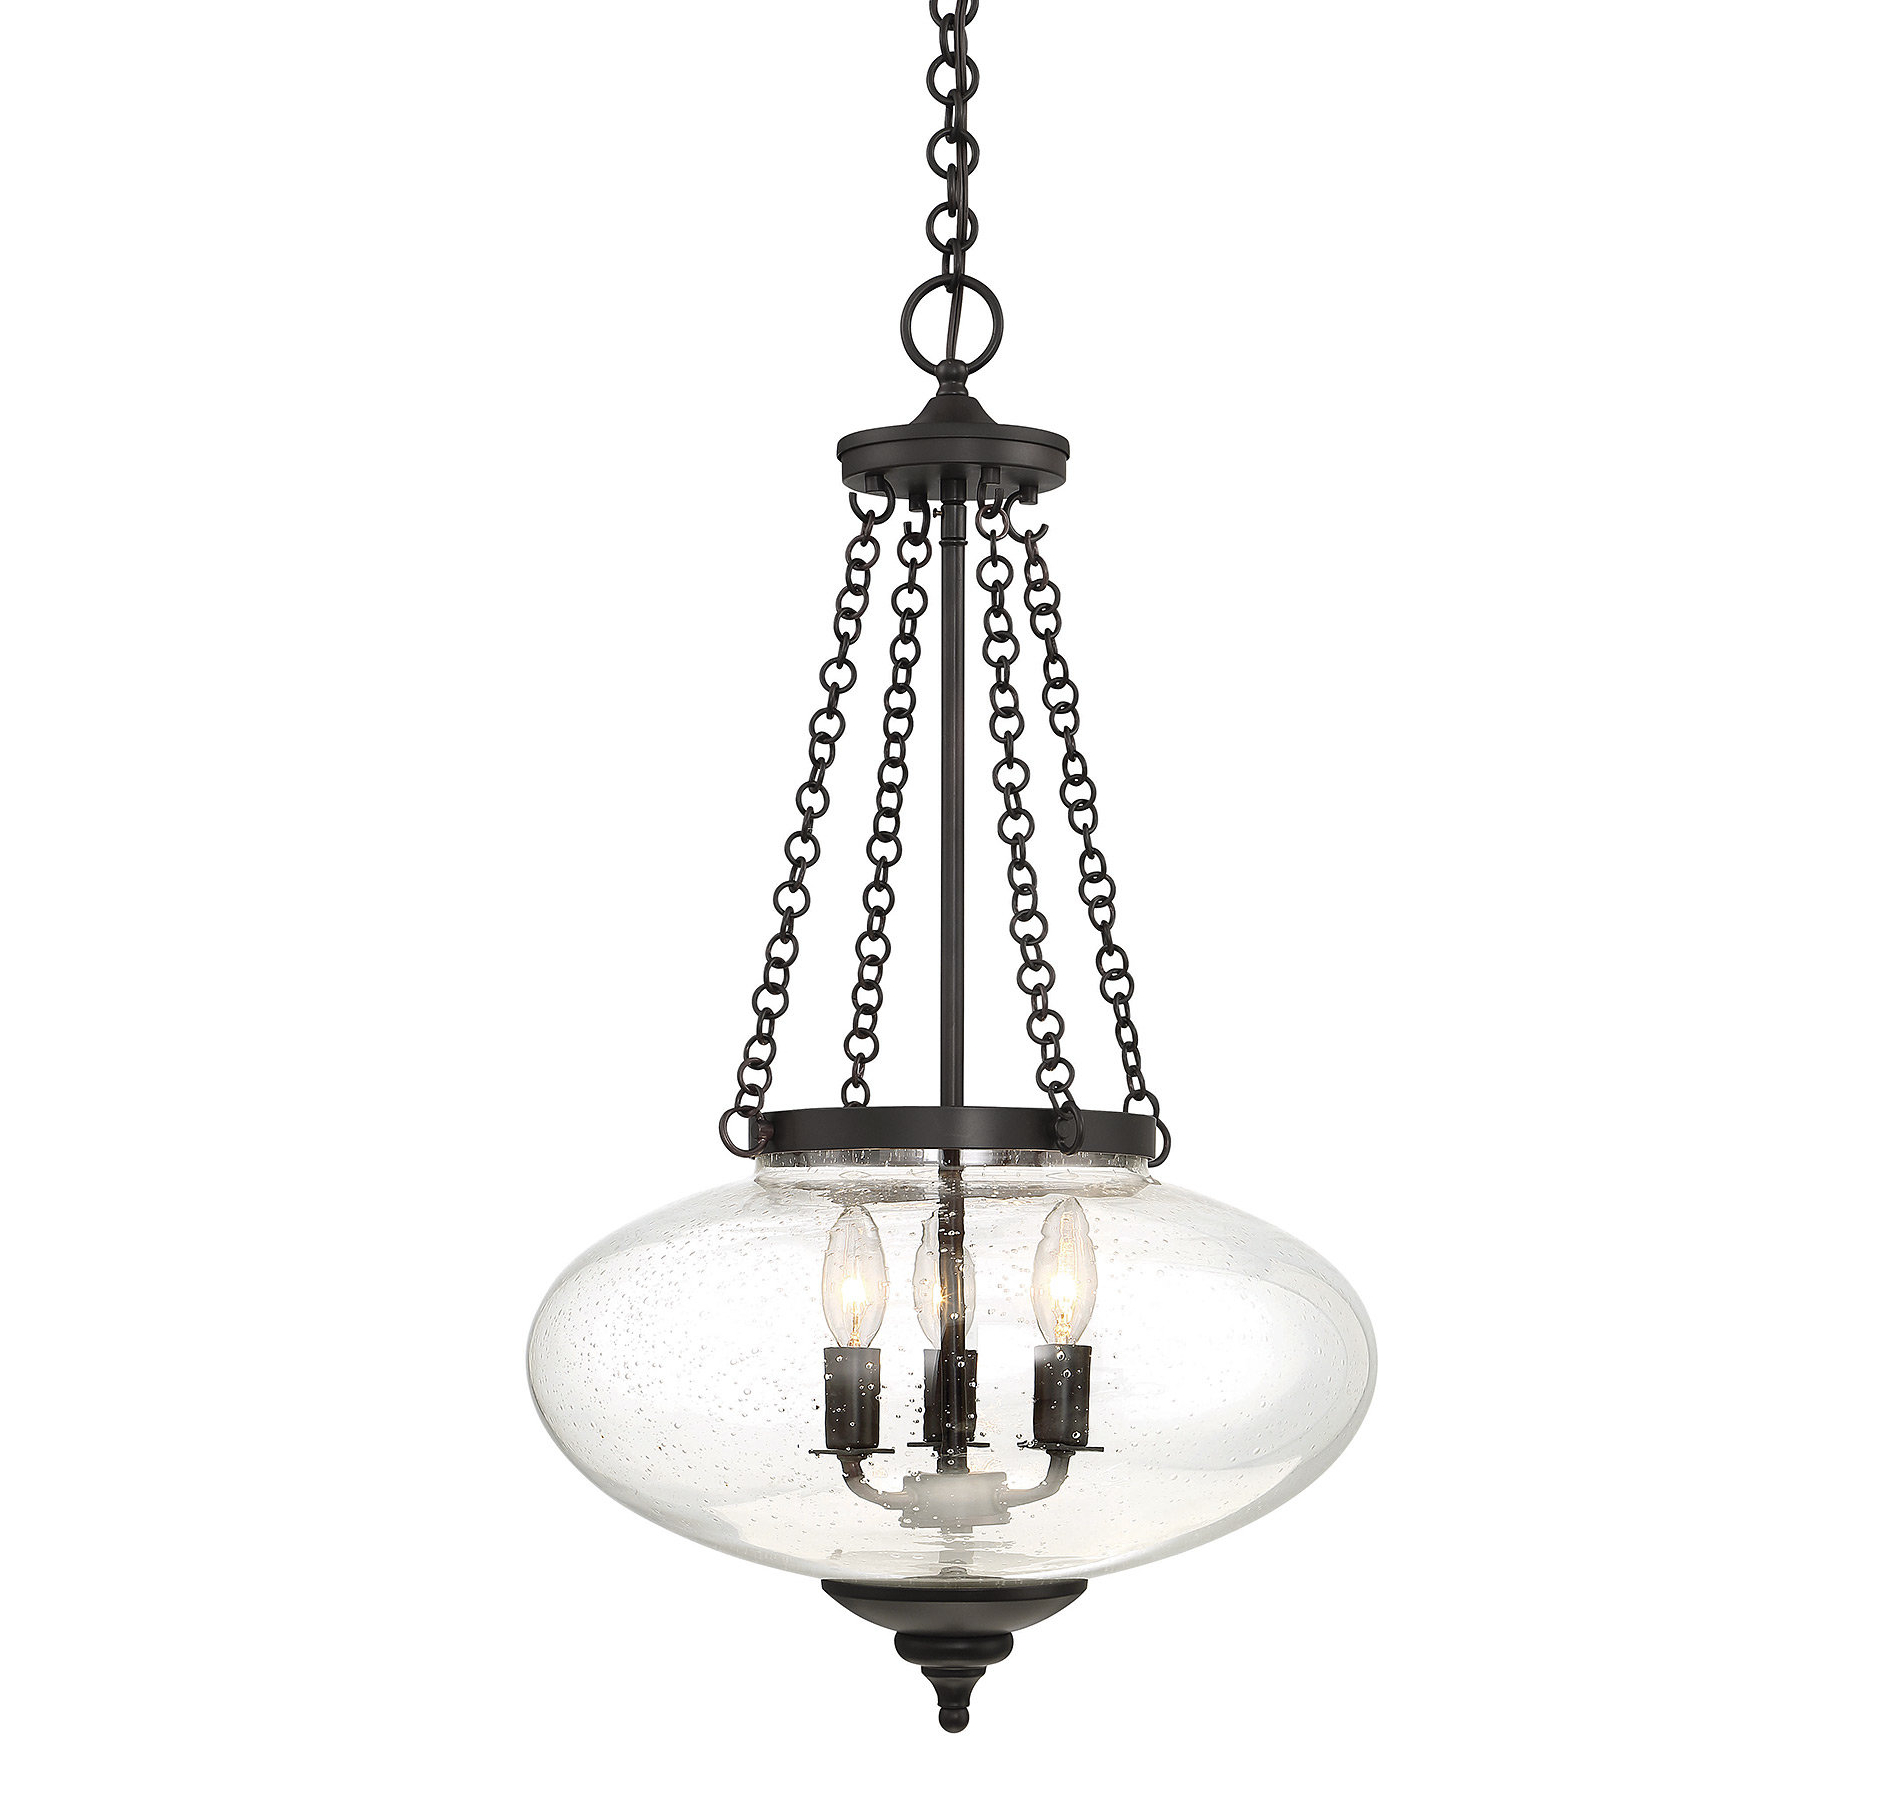 Current Fortunat 3 Light Single Teardrop Pendant For 3 Light Single Urn Pendants (Gallery 19 of 20)